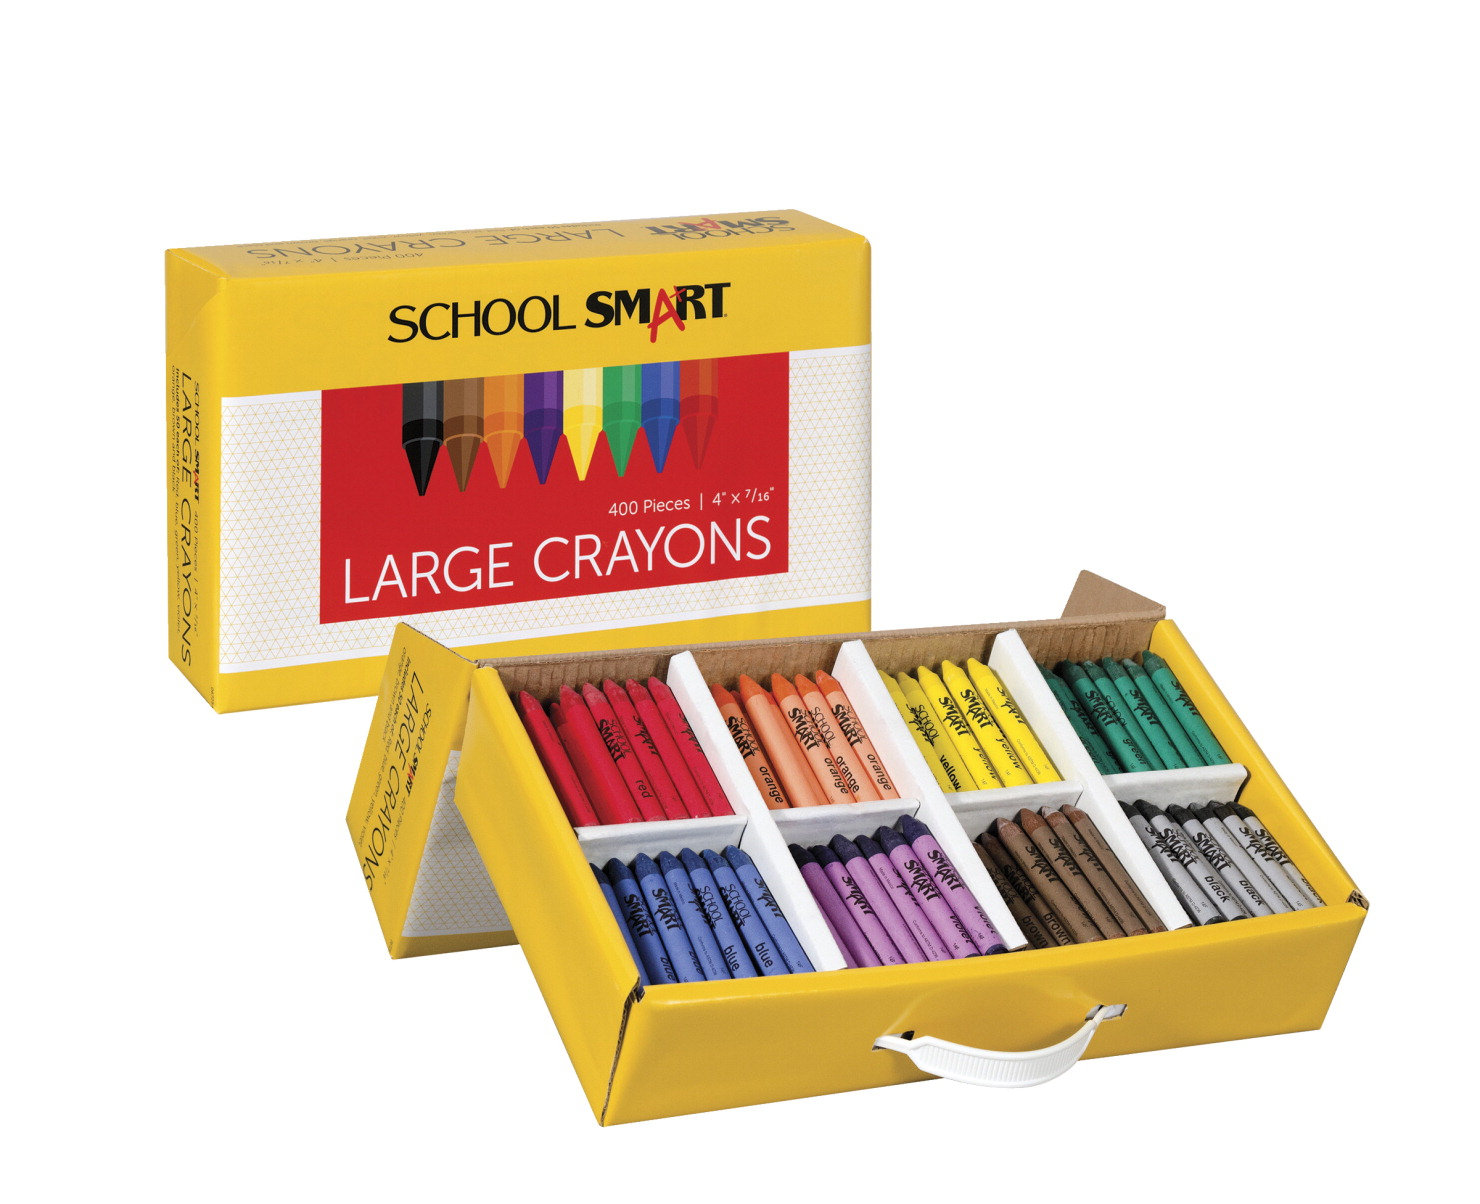 School Smart Large Crayons in Storage Box, Assorted Colors, Pack of 400